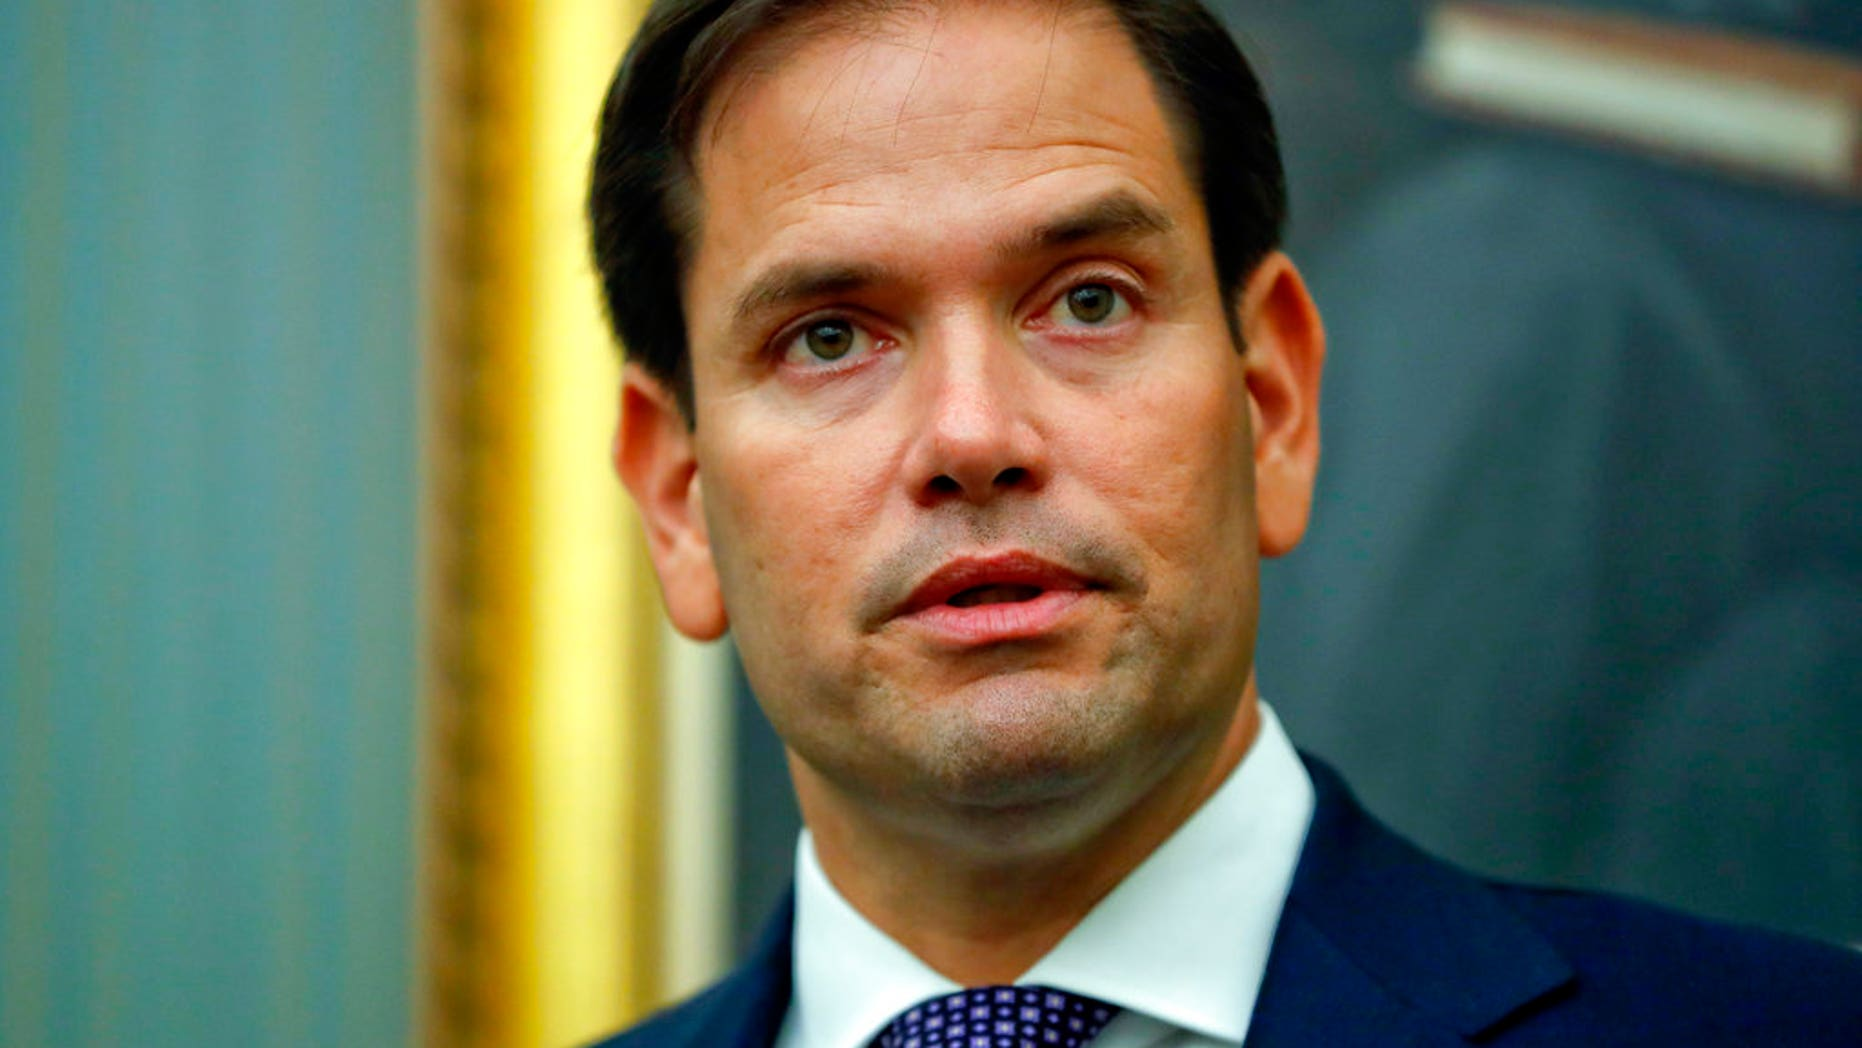 """U.S. Sen. Marco Rubio, R-Fla., says he has fired his chief of staff after reports of """"improper conduct"""" with staffers."""